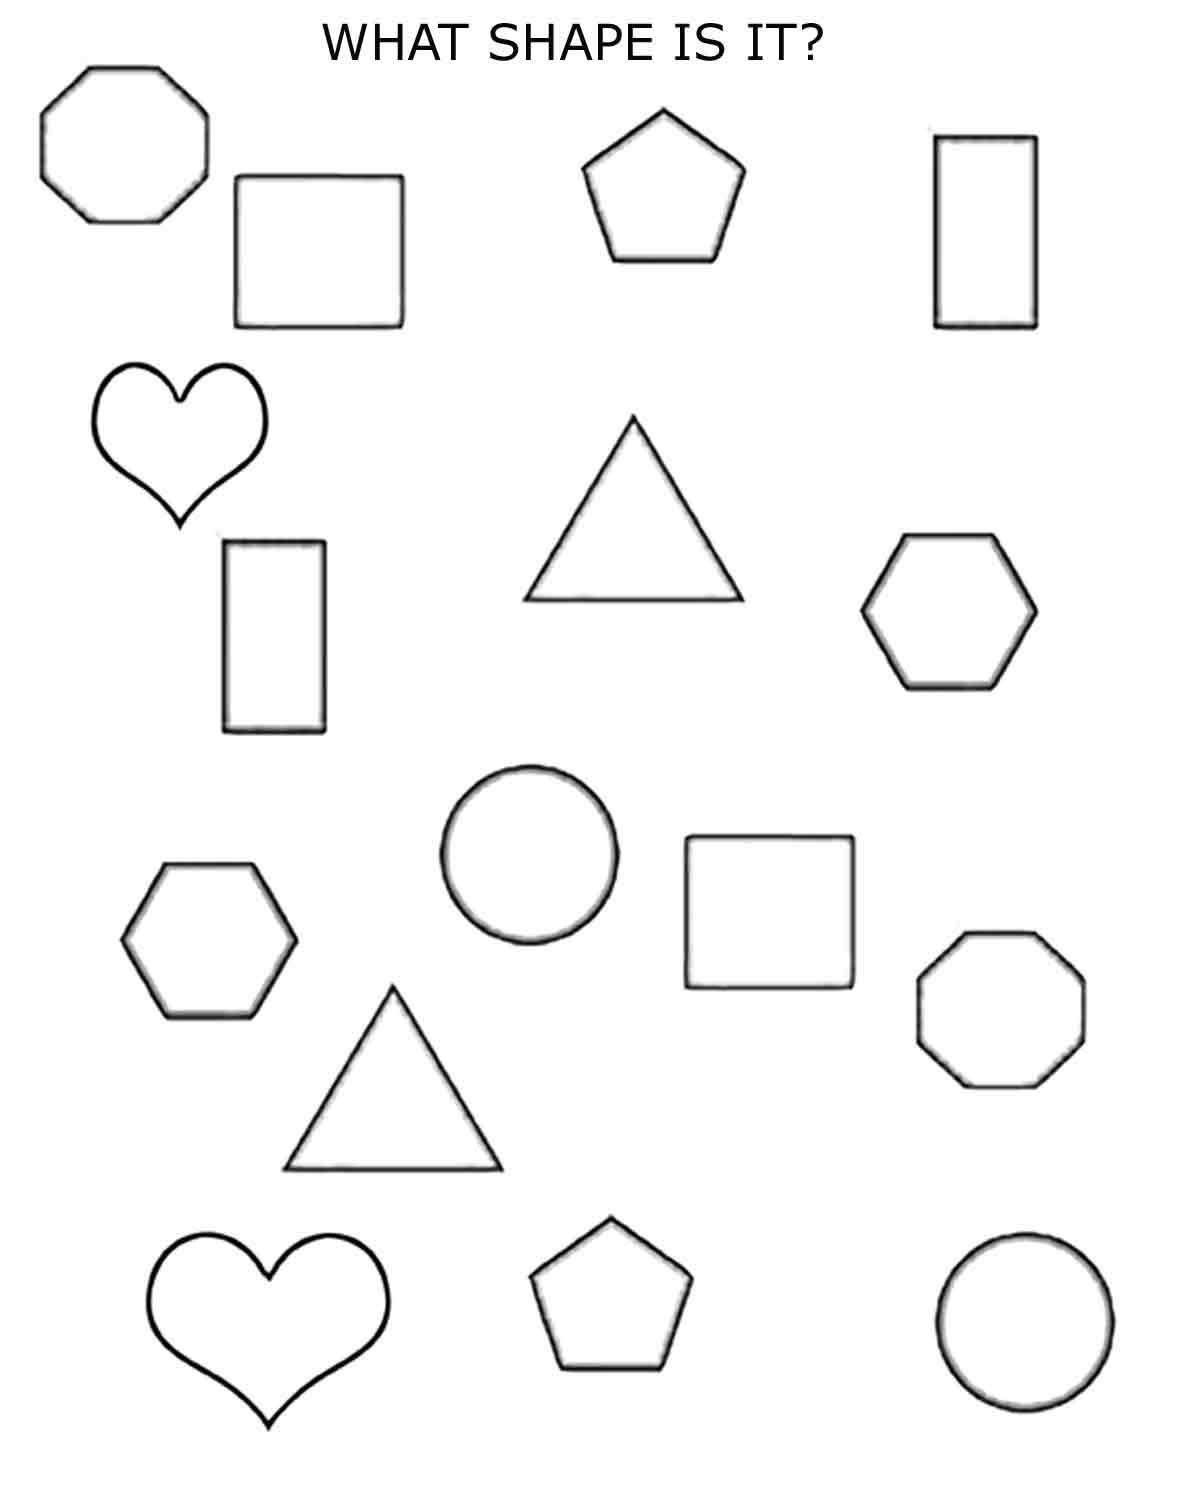 3d Shapes Worksheets 2nd Grade Shapes Archives Planet12sun Printables